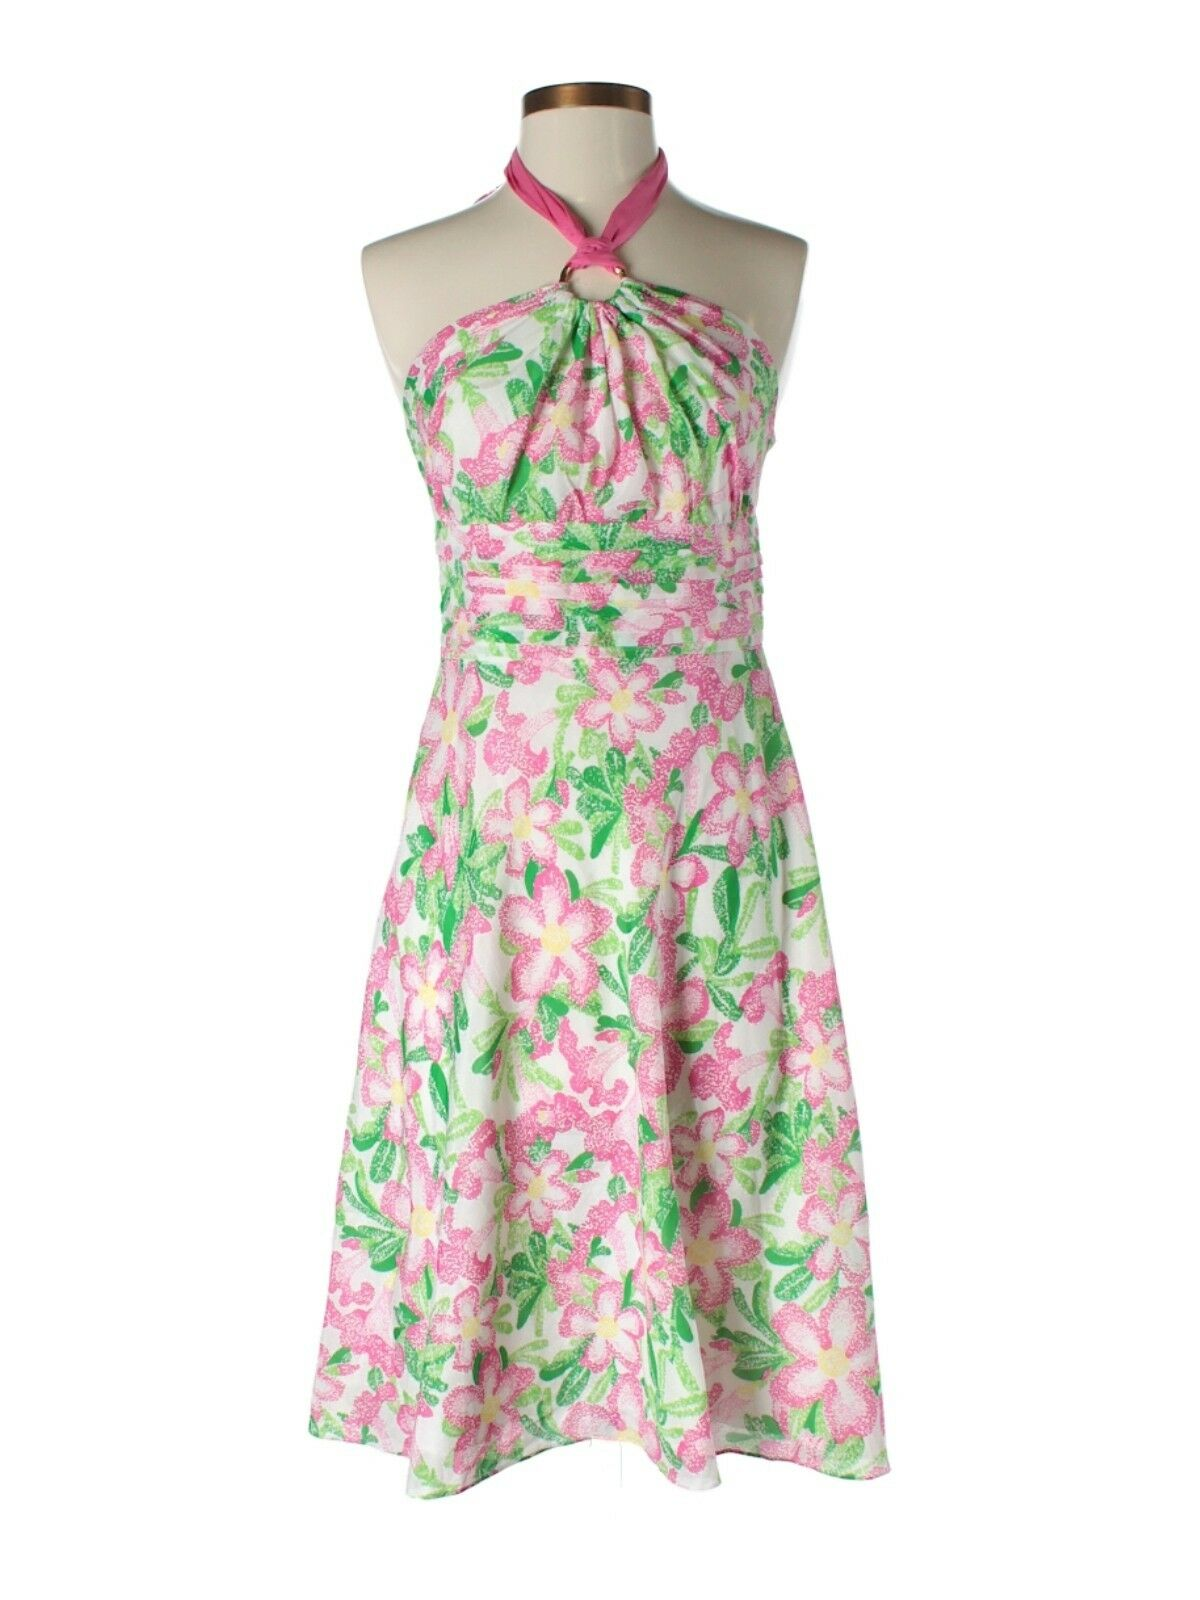 New damen Lilly Pulitzer Silk Blend Rosa Grün Laurel Flower Dress Größe 2